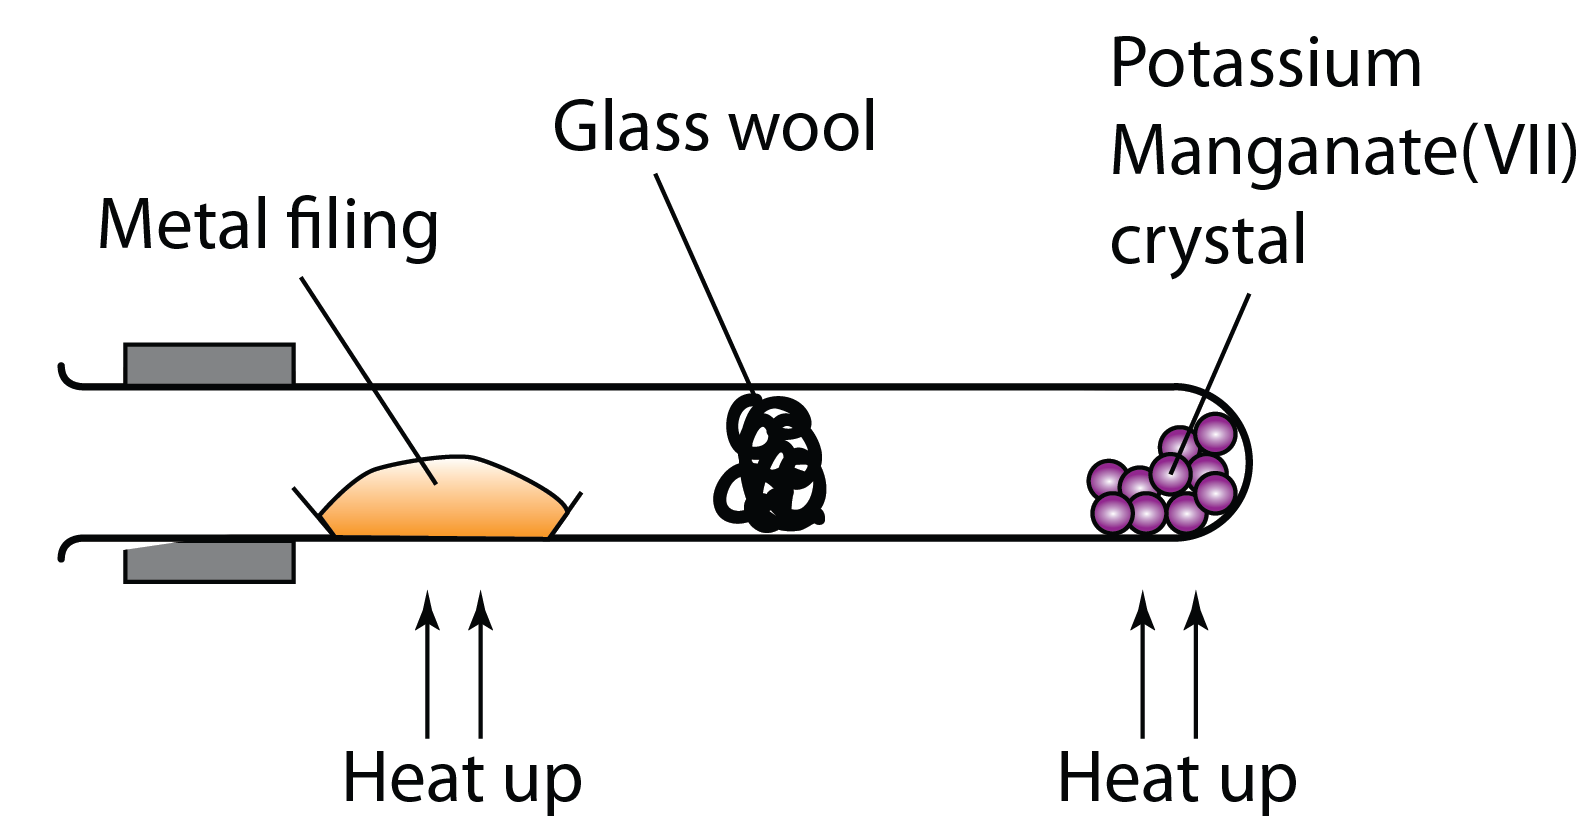 Series of reactivity of metals spm chemistry form 4form 5 the arrangement of the metal according to the tendency of reaction with oxygen to form the metal oxide is known as the reactivity series of metals gamestrikefo Gallery